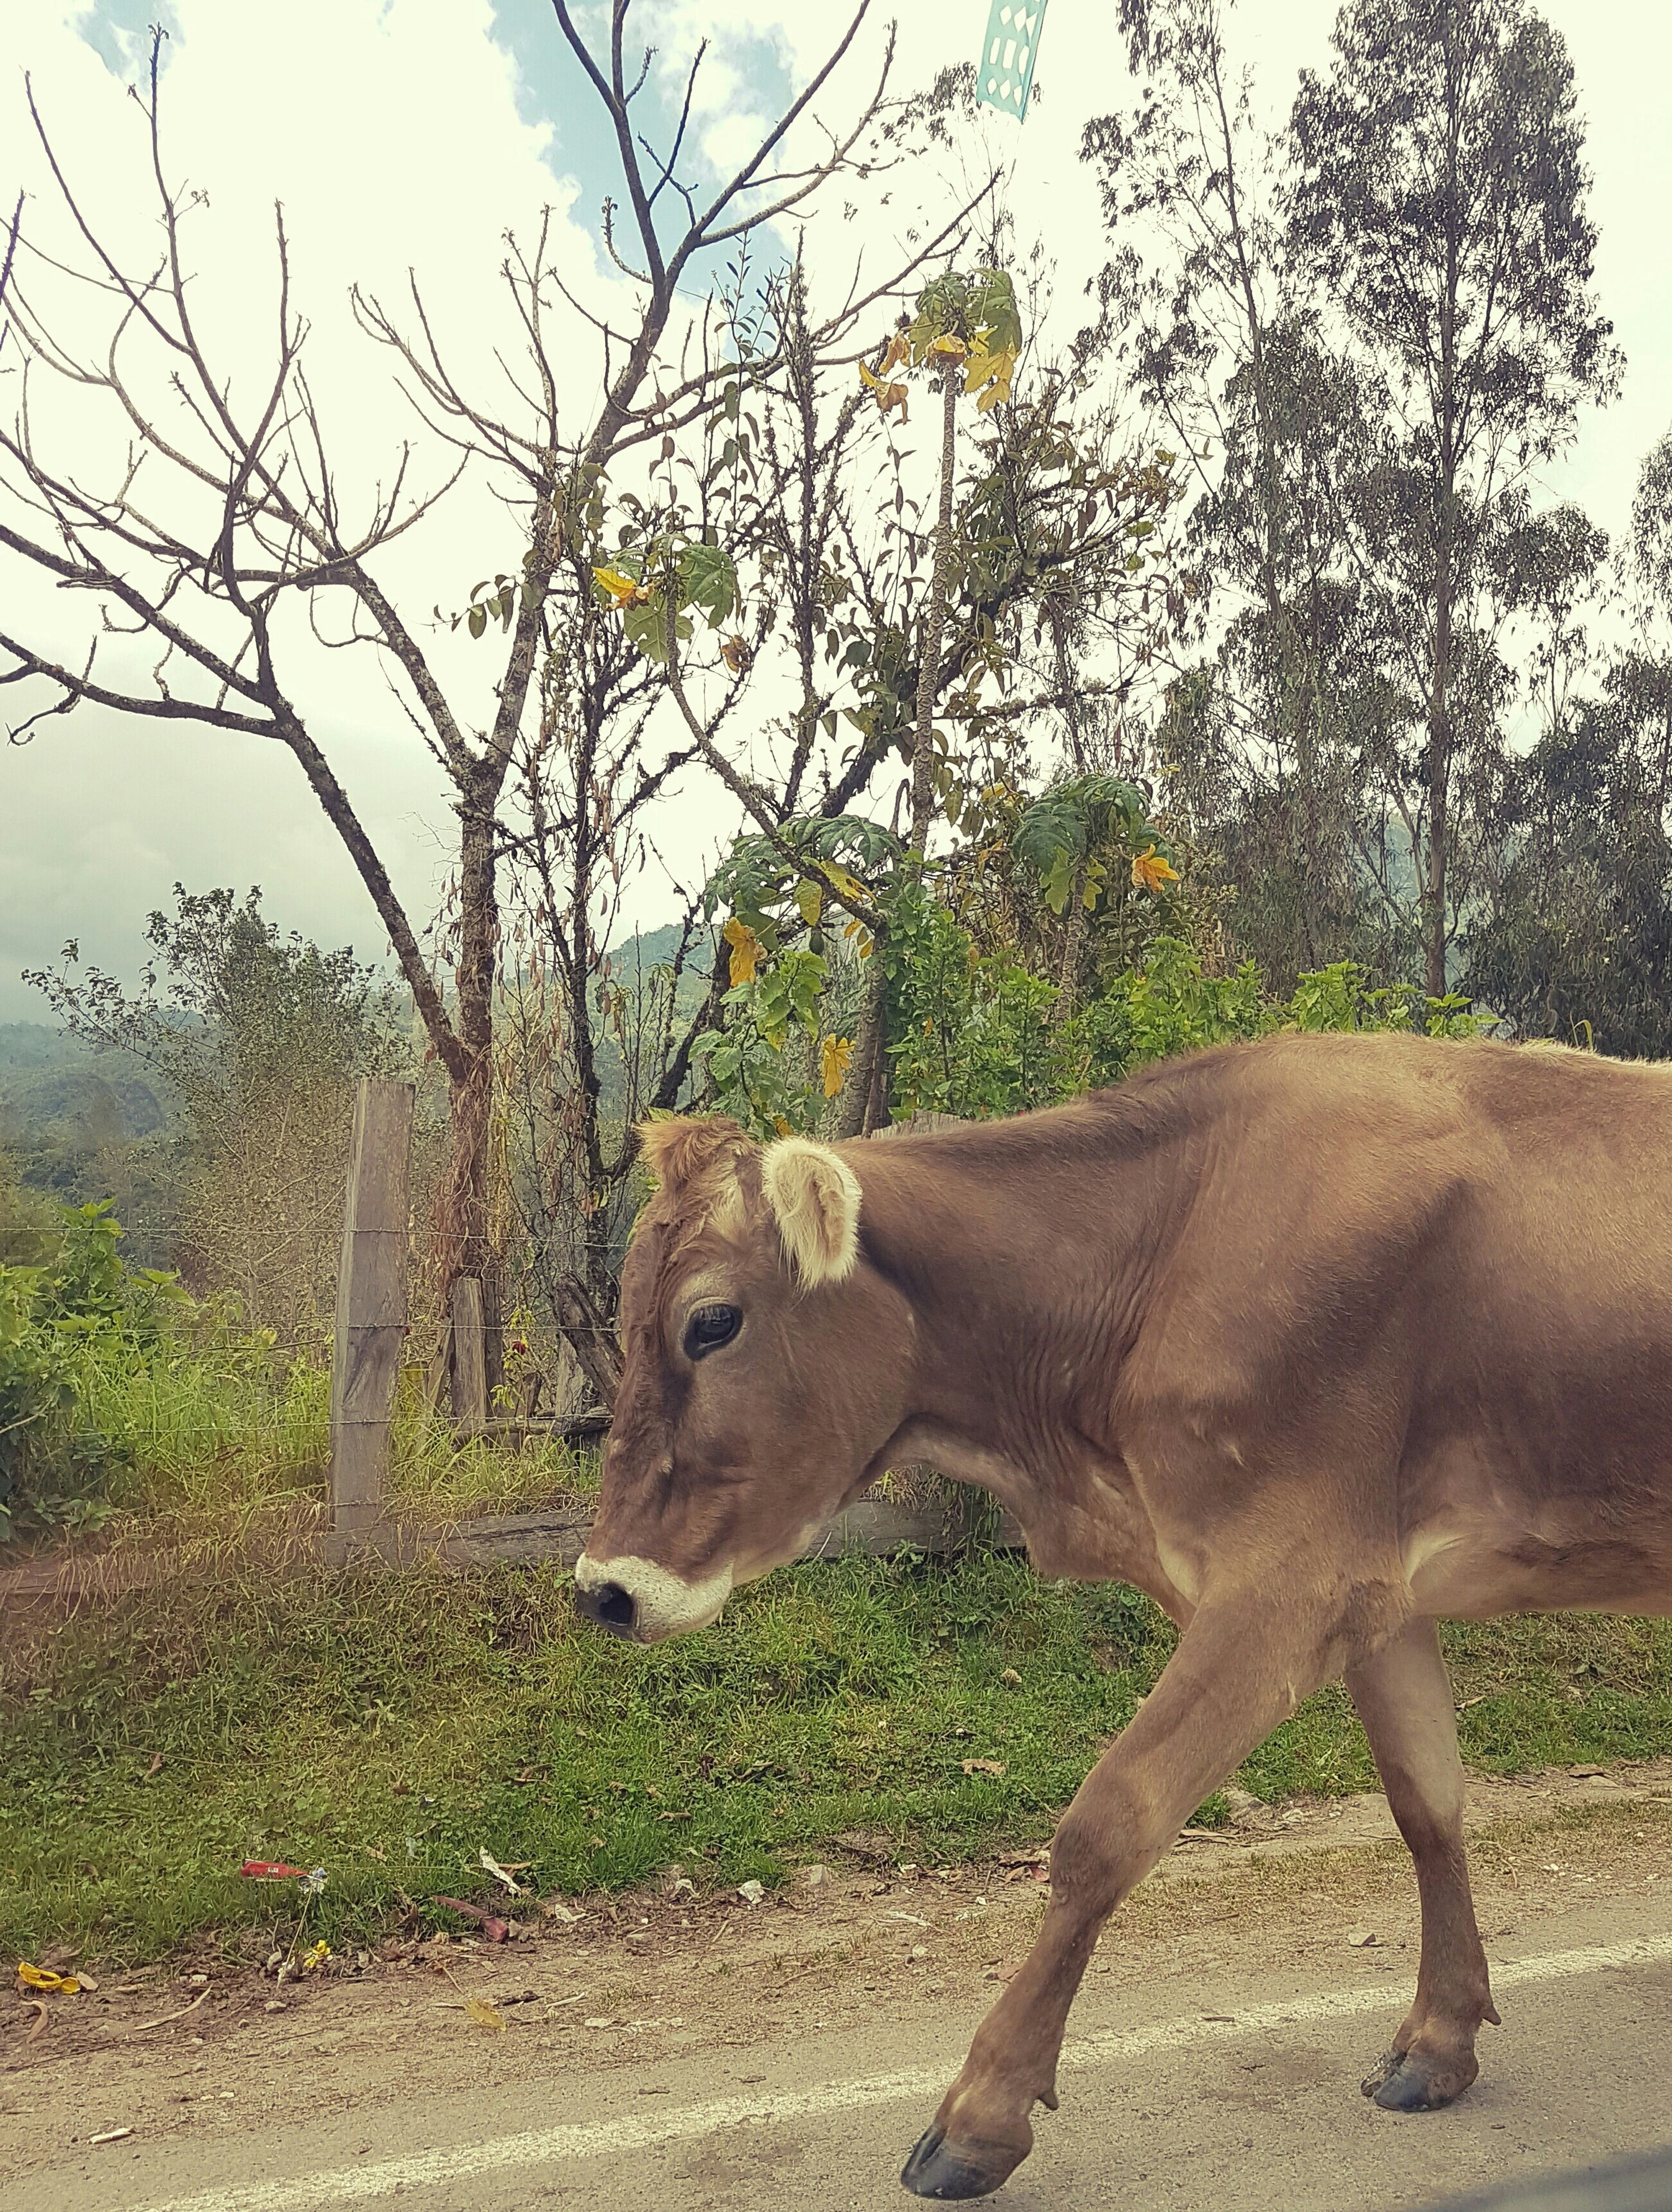 animal themes, one animal, mammal, tree, domestic animals, livestock, day, field, no people, standing, cow, outdoors, nature, full length, sky